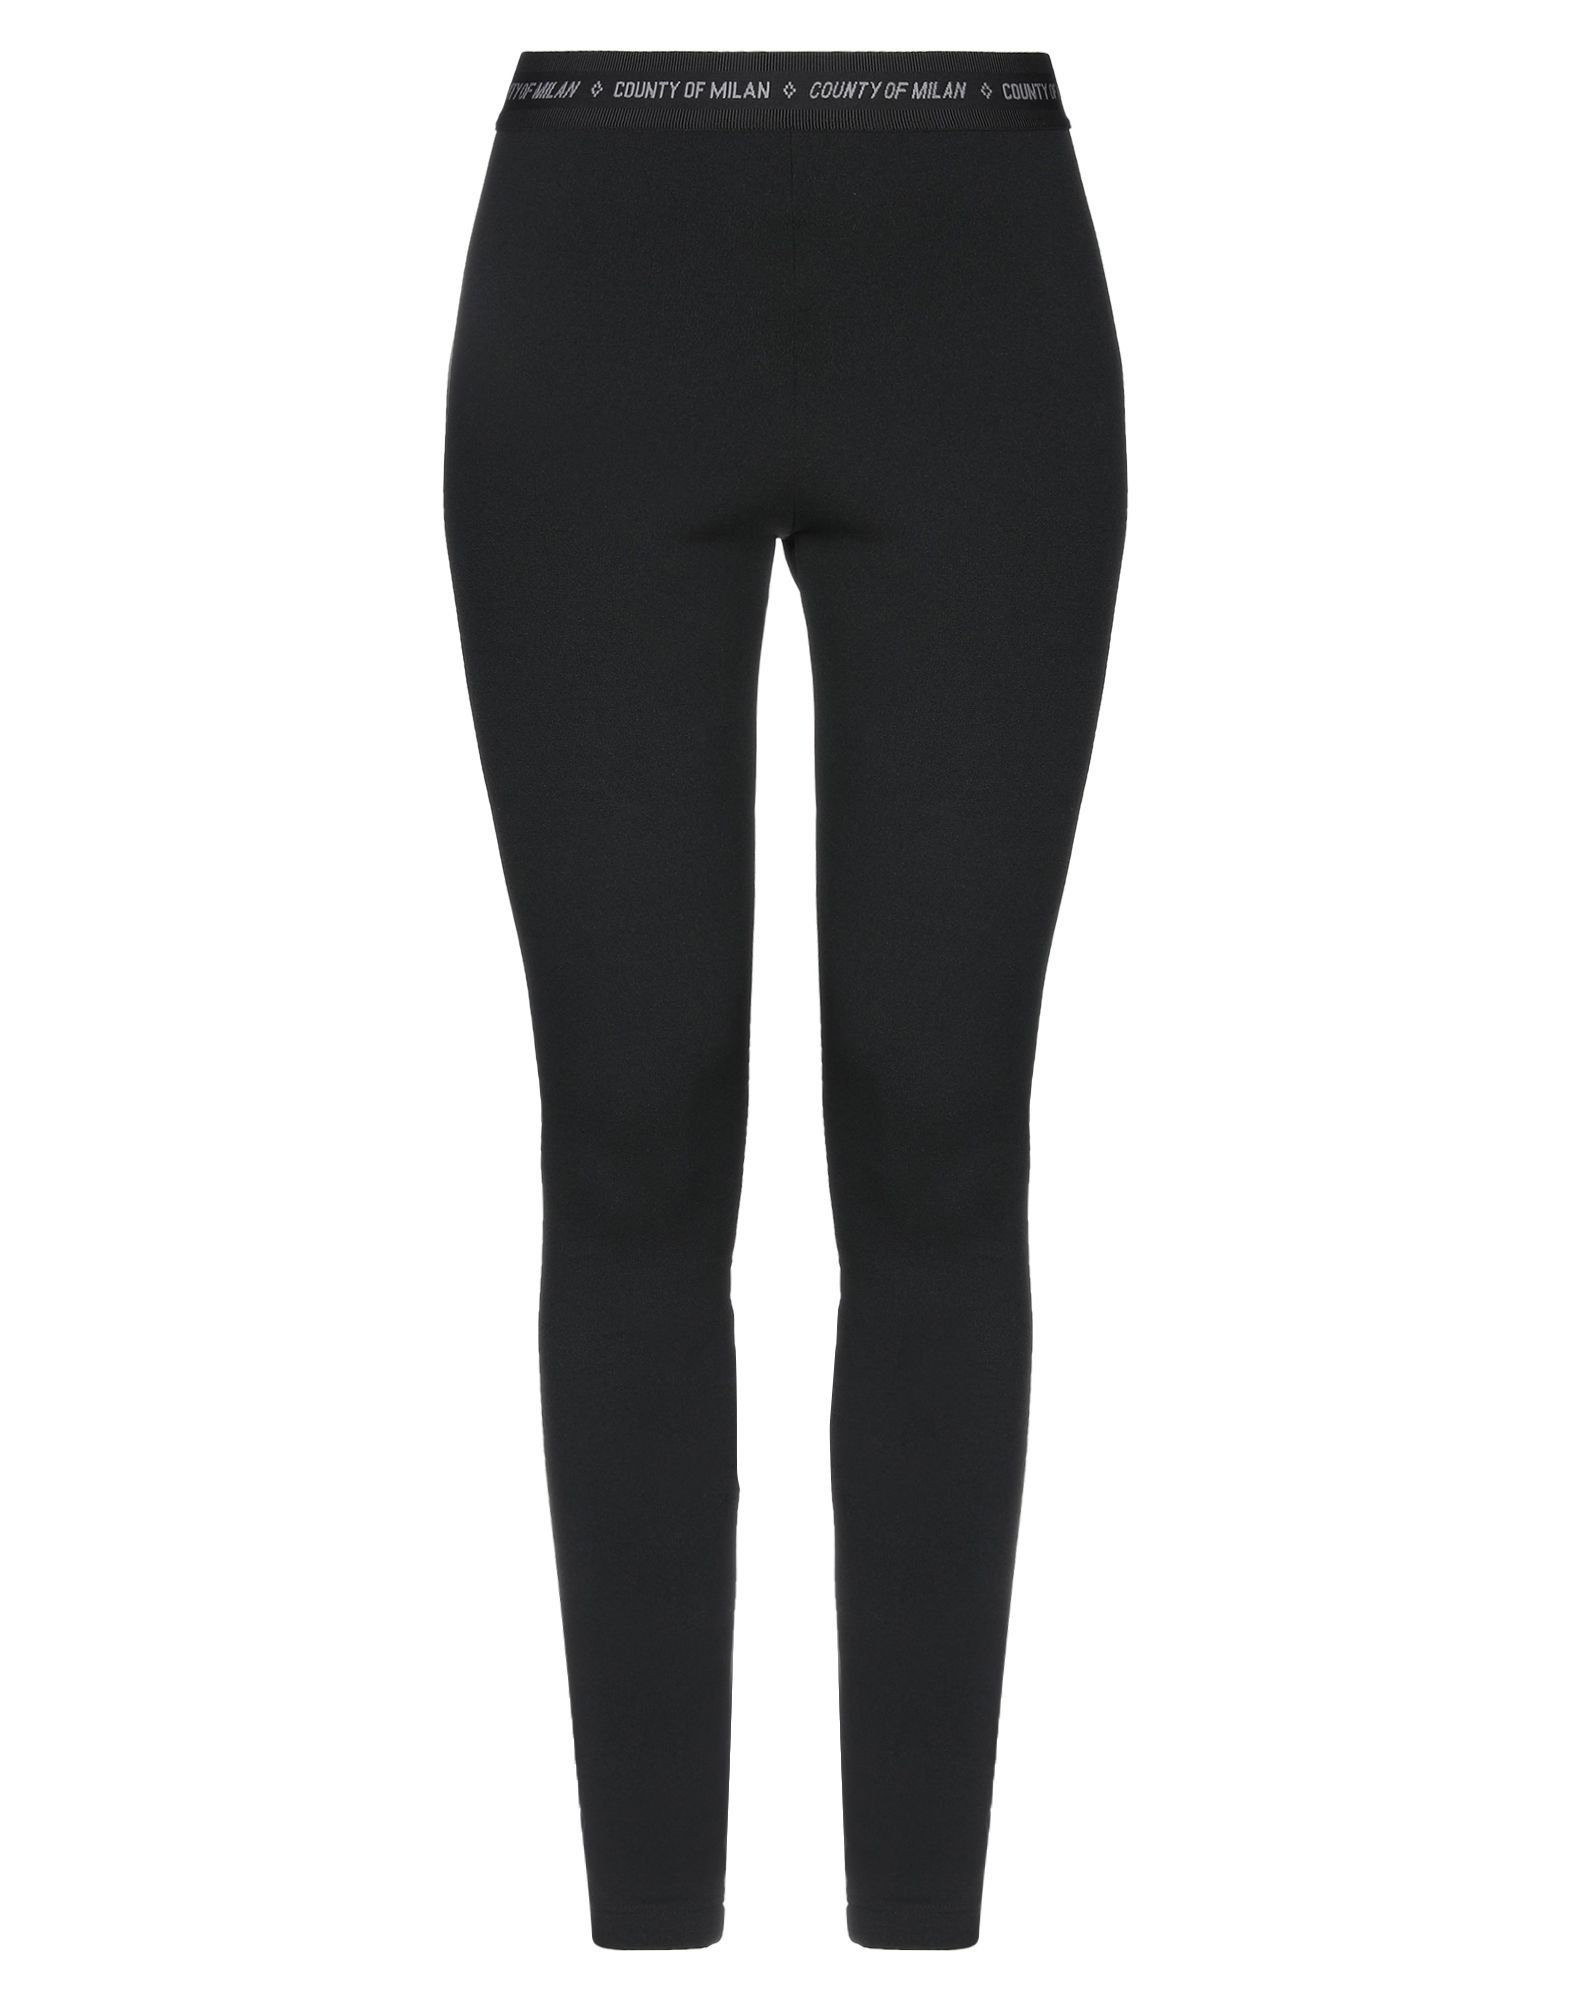 MARCELO BURLON Leggings. jersey, no appliqués, basic solid color, mid rise, slim fit, tapered leg, elasticized waist, no pockets, stretch. 95% Polyester, 5% Elastane